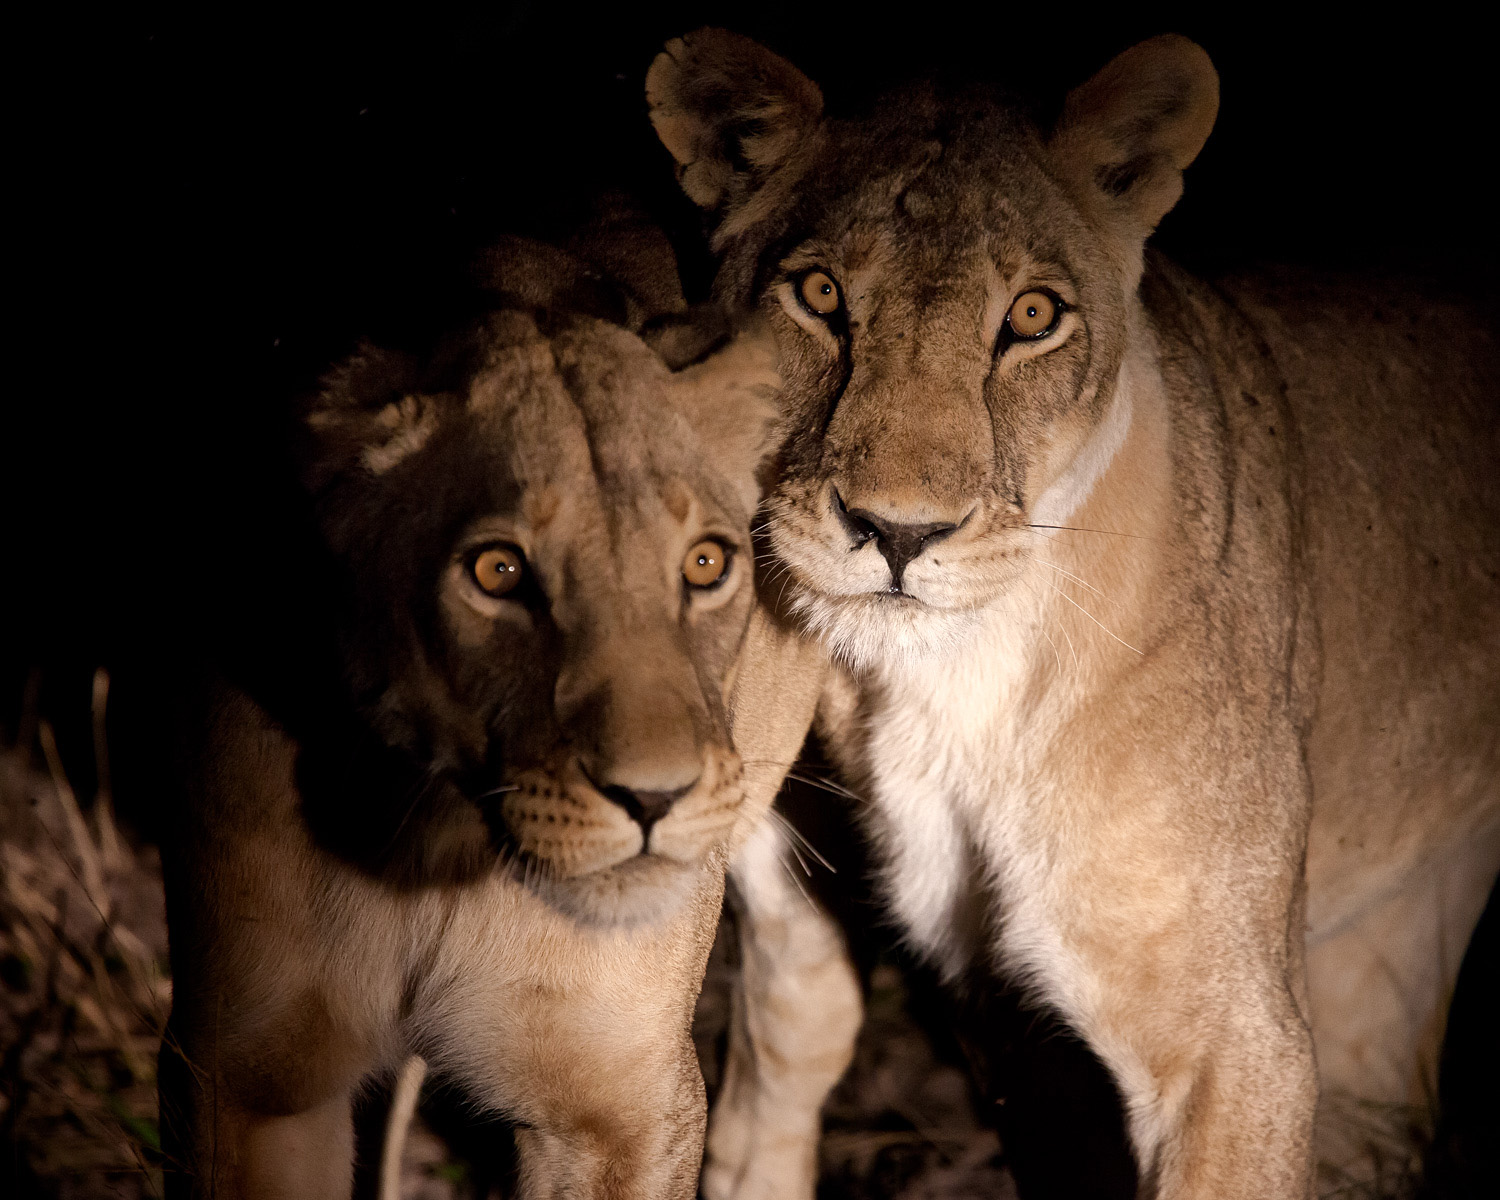 Lions are more active at night!